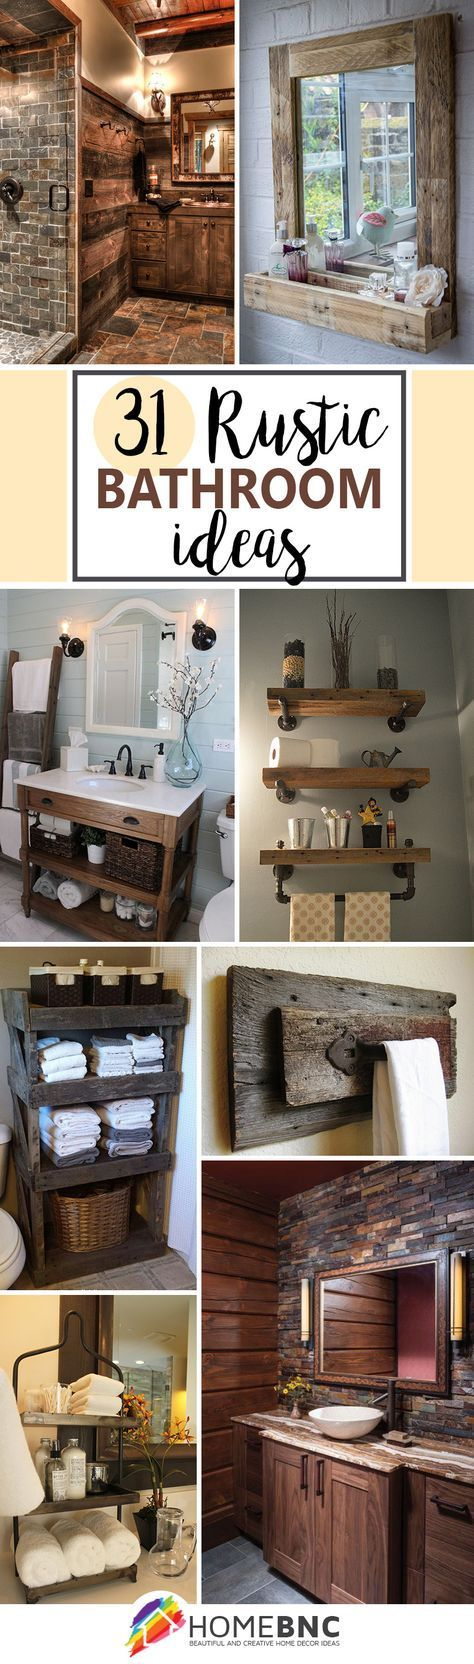 Gorgeous Rustic Bathroom Decor Ideas To Try At Home